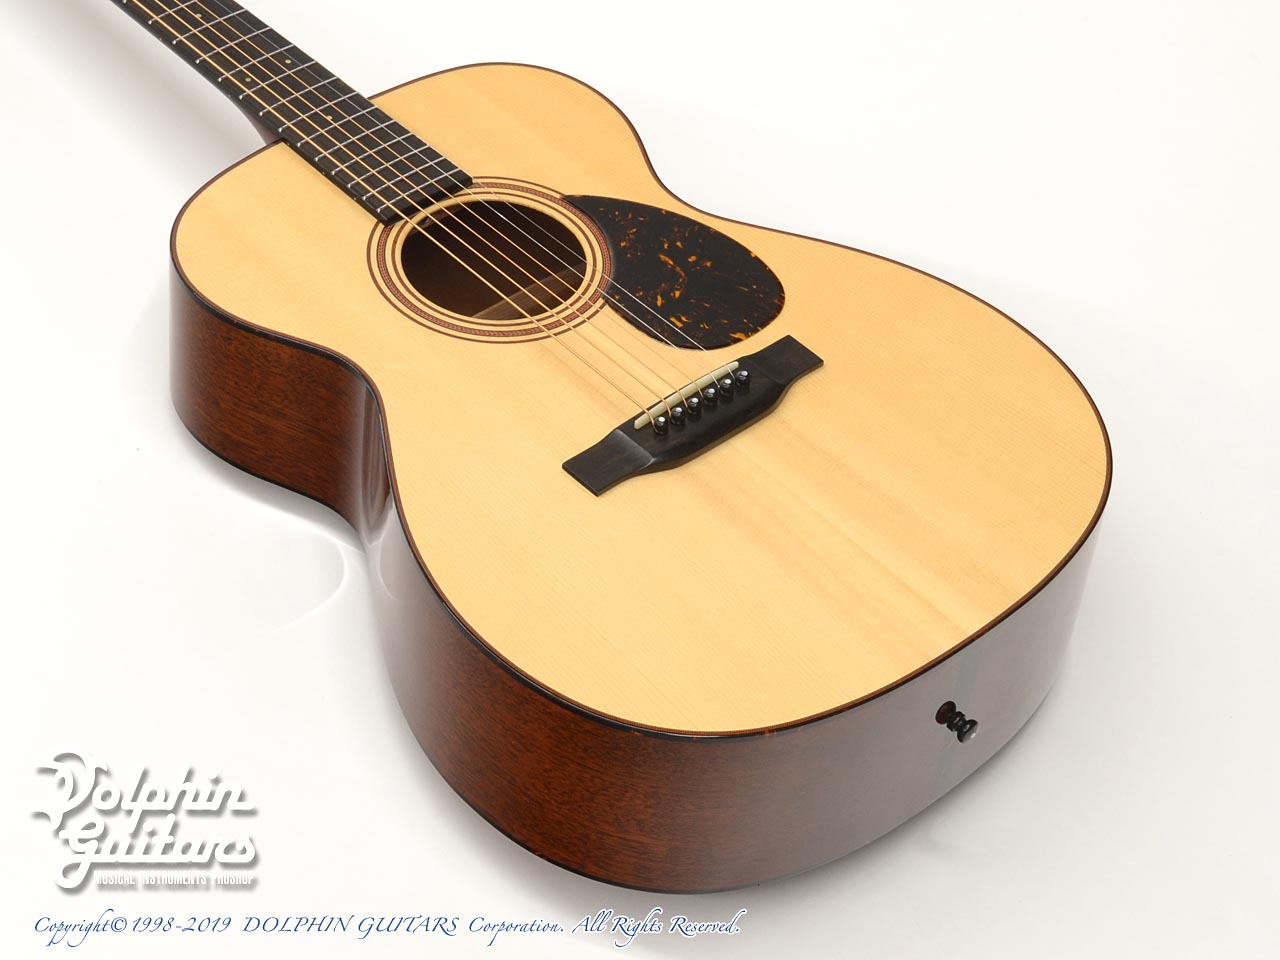 SWITCH: SC00-1 A-VH Limited (Adirondack Spruce & Vintage Honduras Mahogany) (1)